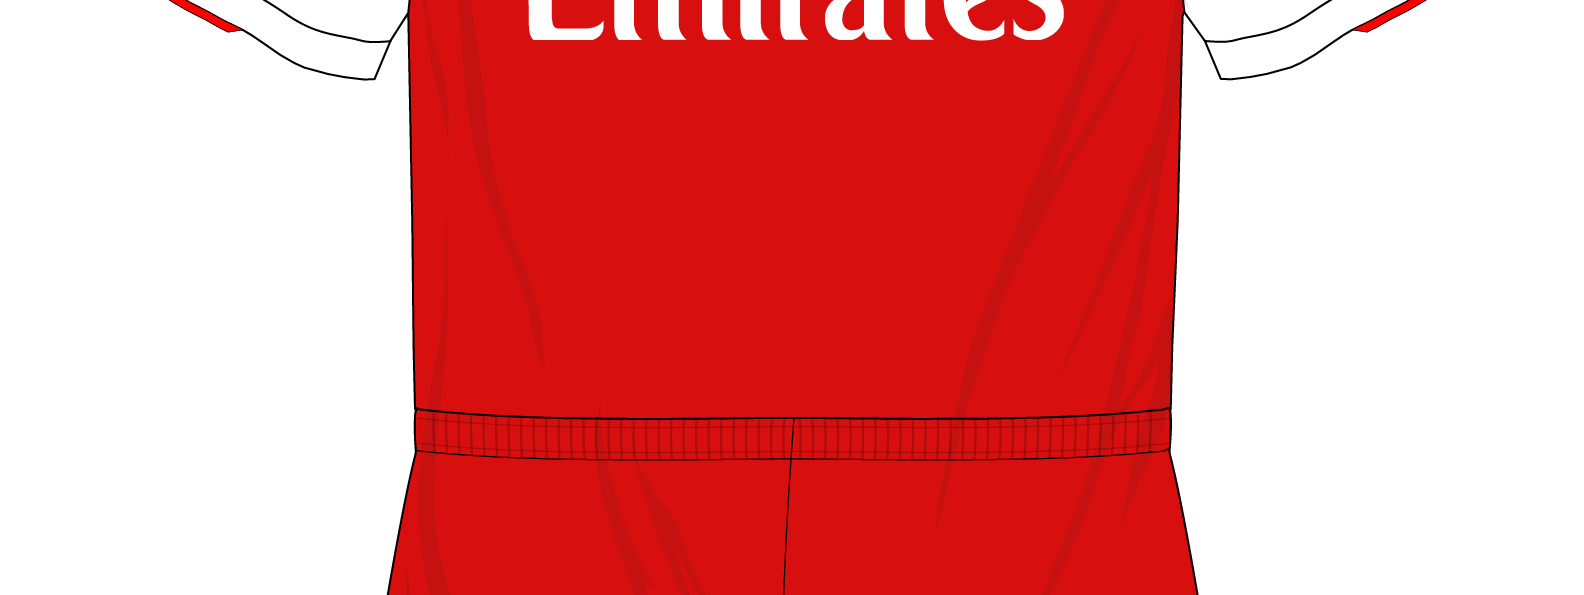 4ee33b52c3a arsenal-2017-2018-home-kit-red-shorts-west-brom -011-e1514723857255.png?fit=1584,595&ssl=1